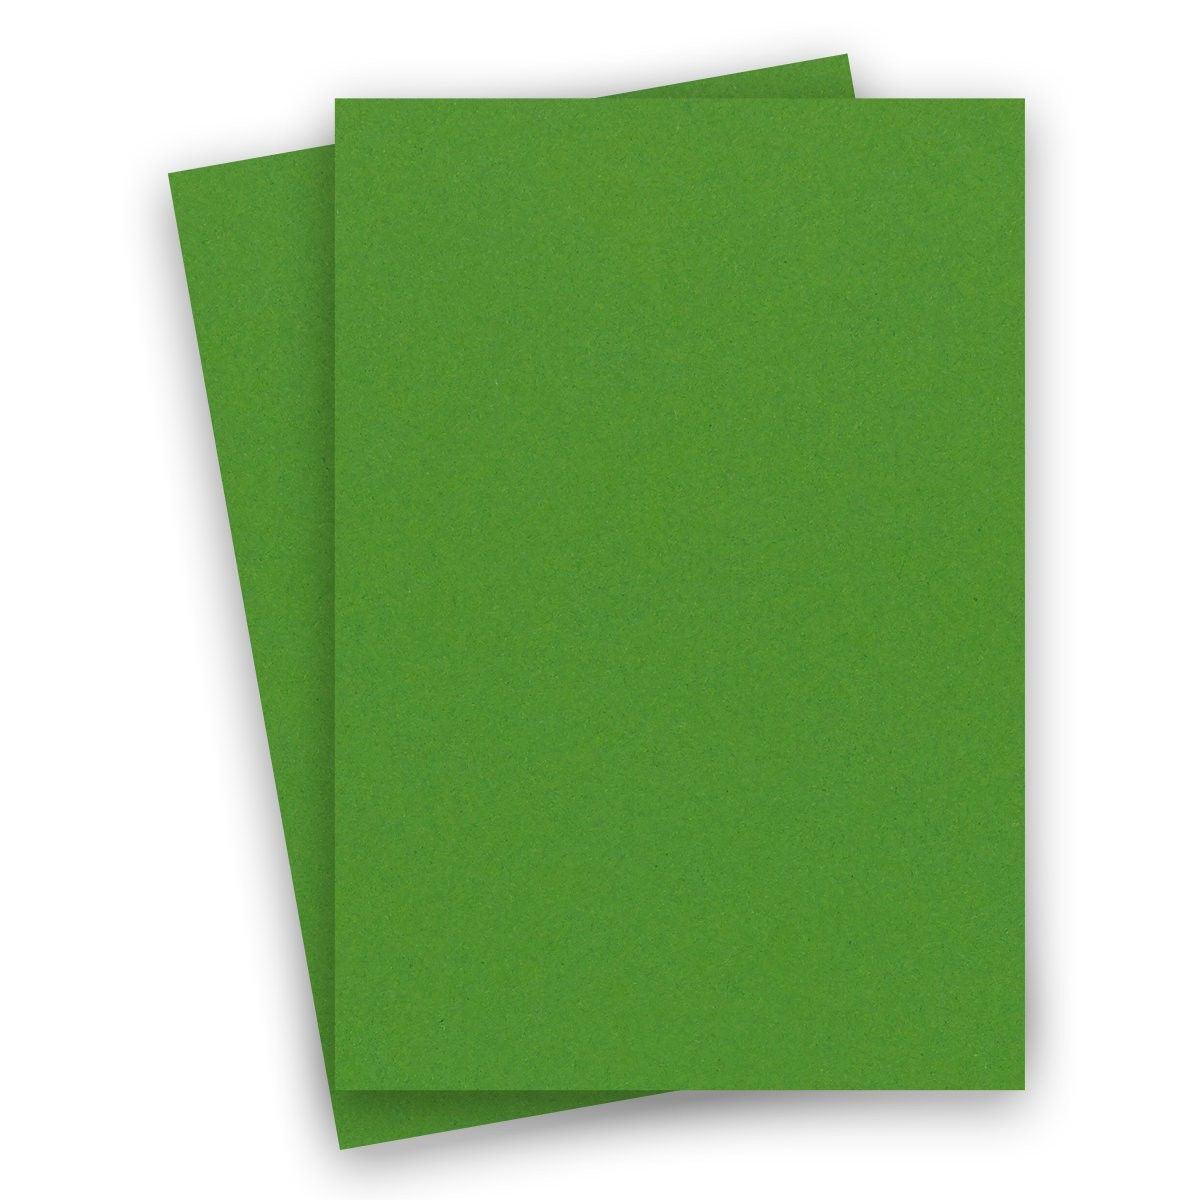 Extract Cactus 8 1 2 X 14 Legal Size Paper 130 Gsm 36 88lb Text 200 Pk Legal Size Paper Cardstock Paper Card Stock